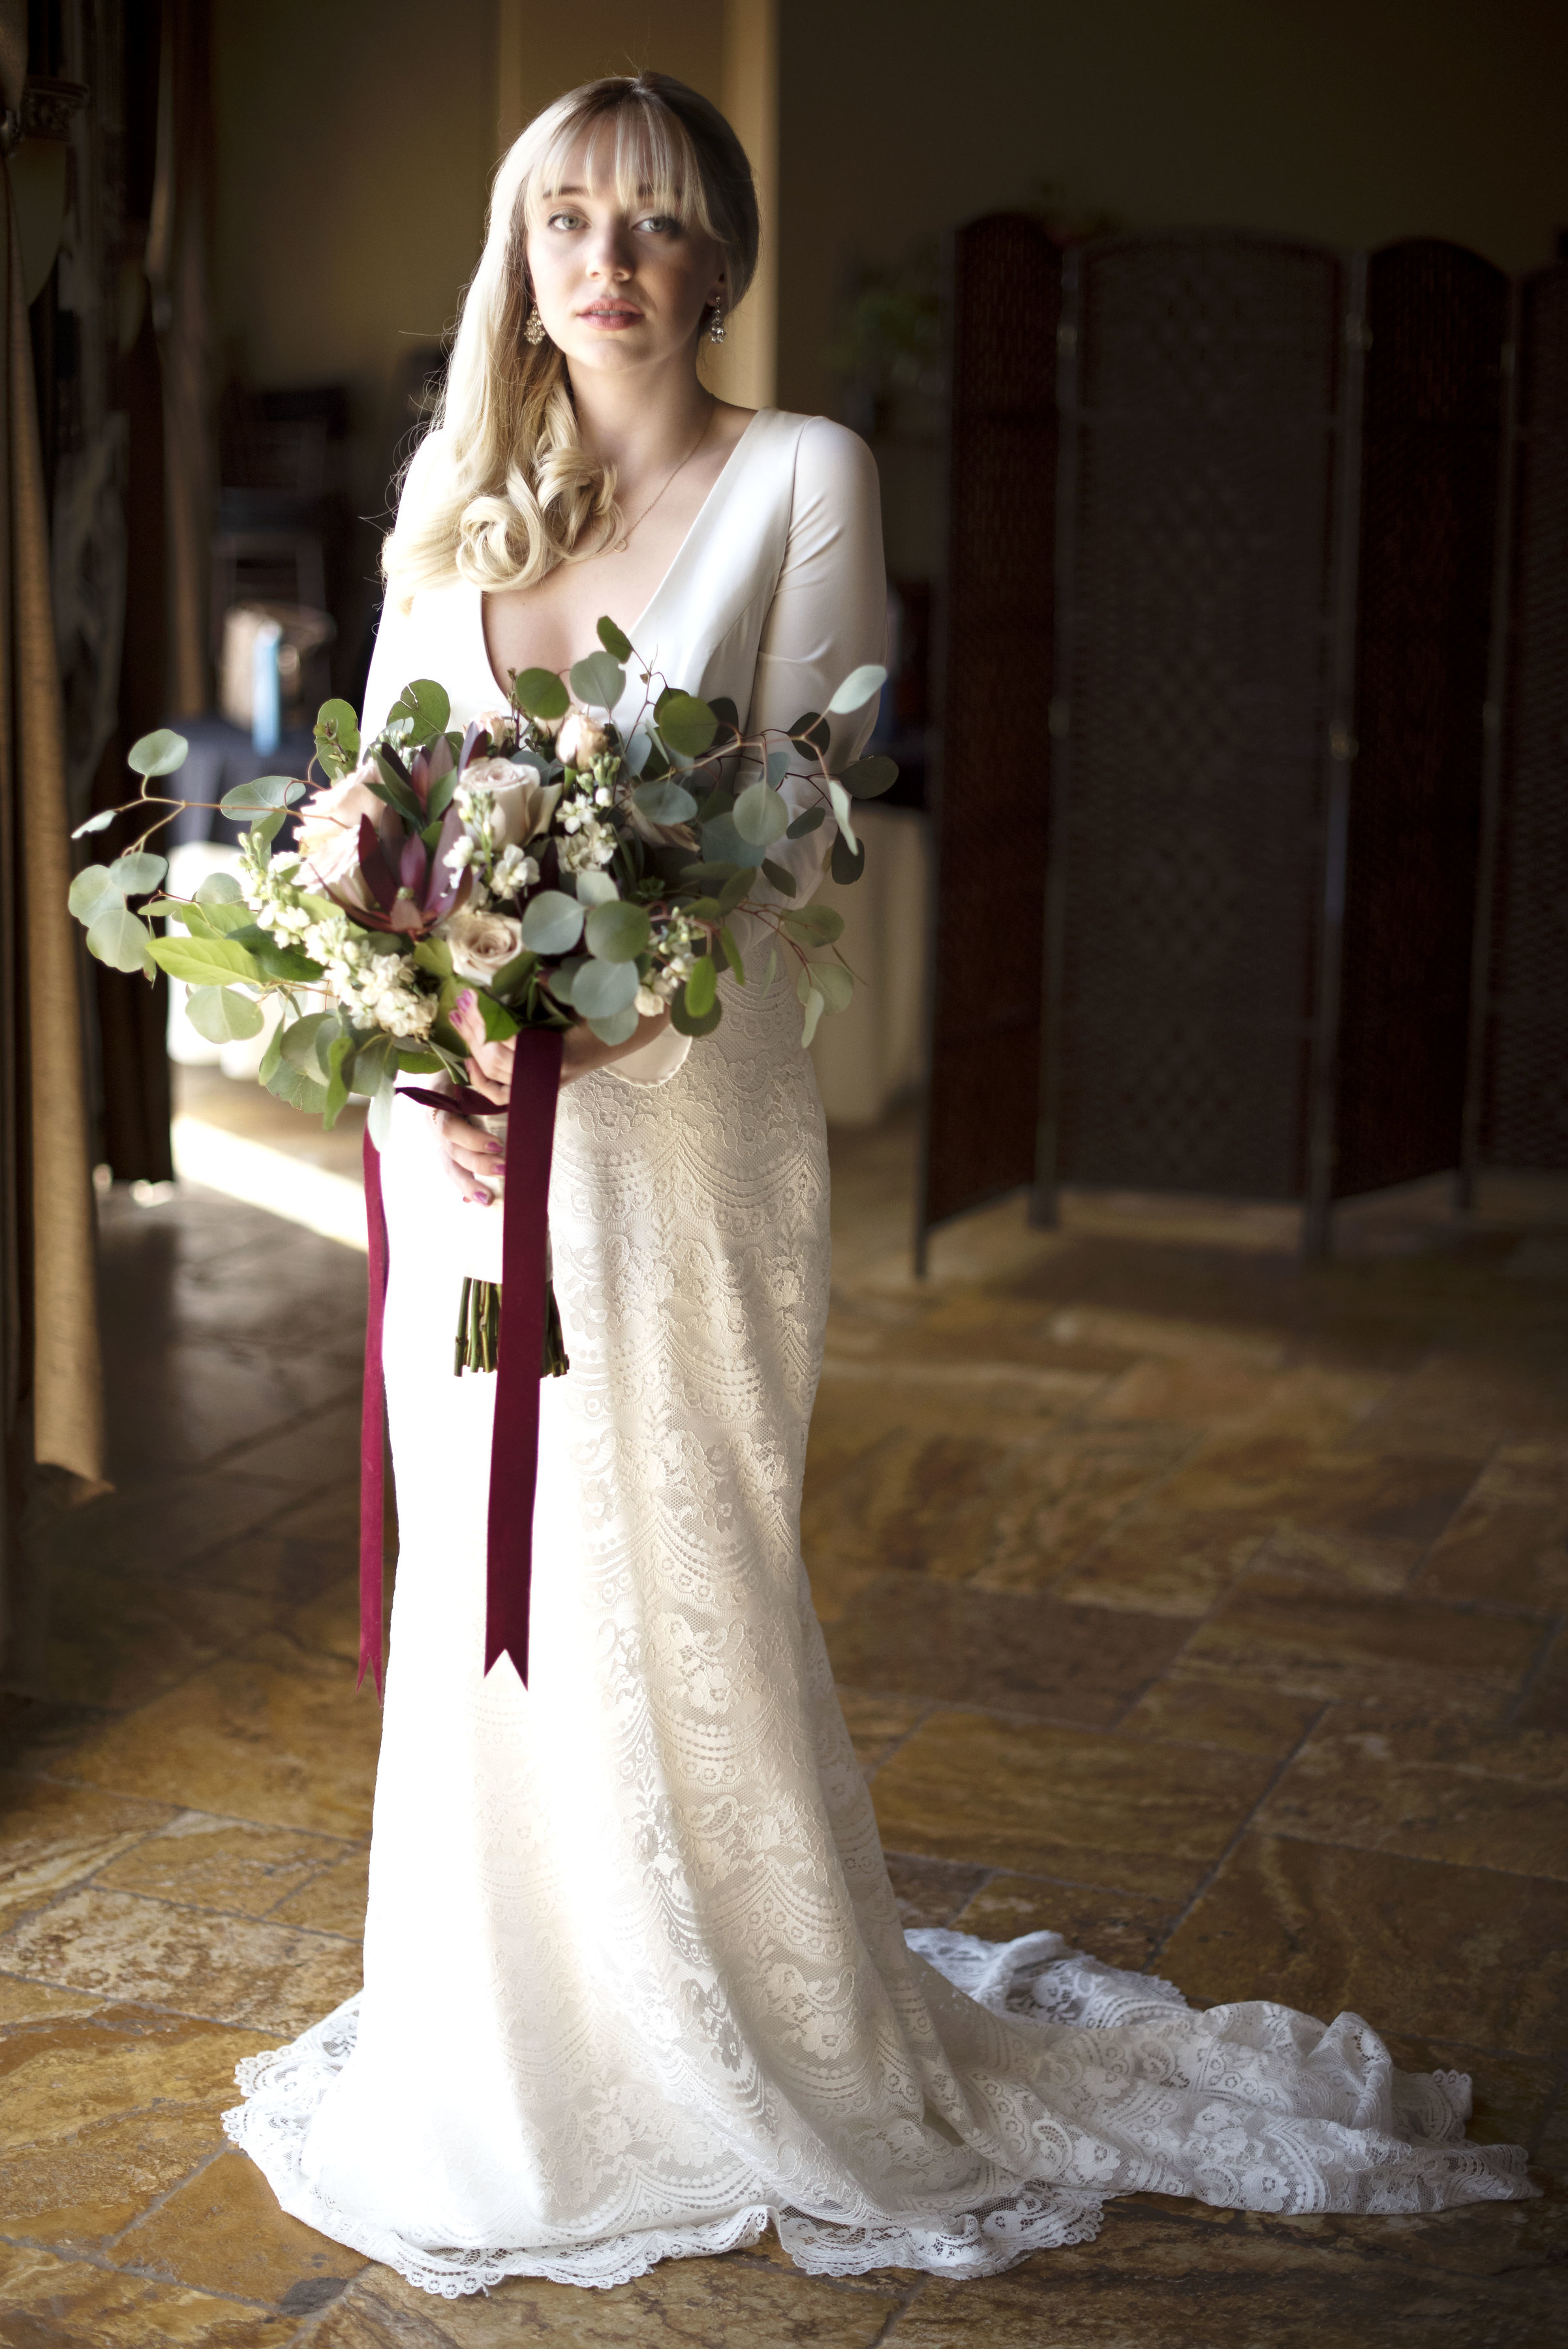 Wedding inspiration for the sophisticated bride from this elegant bridal styled shoot in Chicago, Illinois captured by Brooke Christine Photography. See more wedding ideas at CHItheeWED.com!